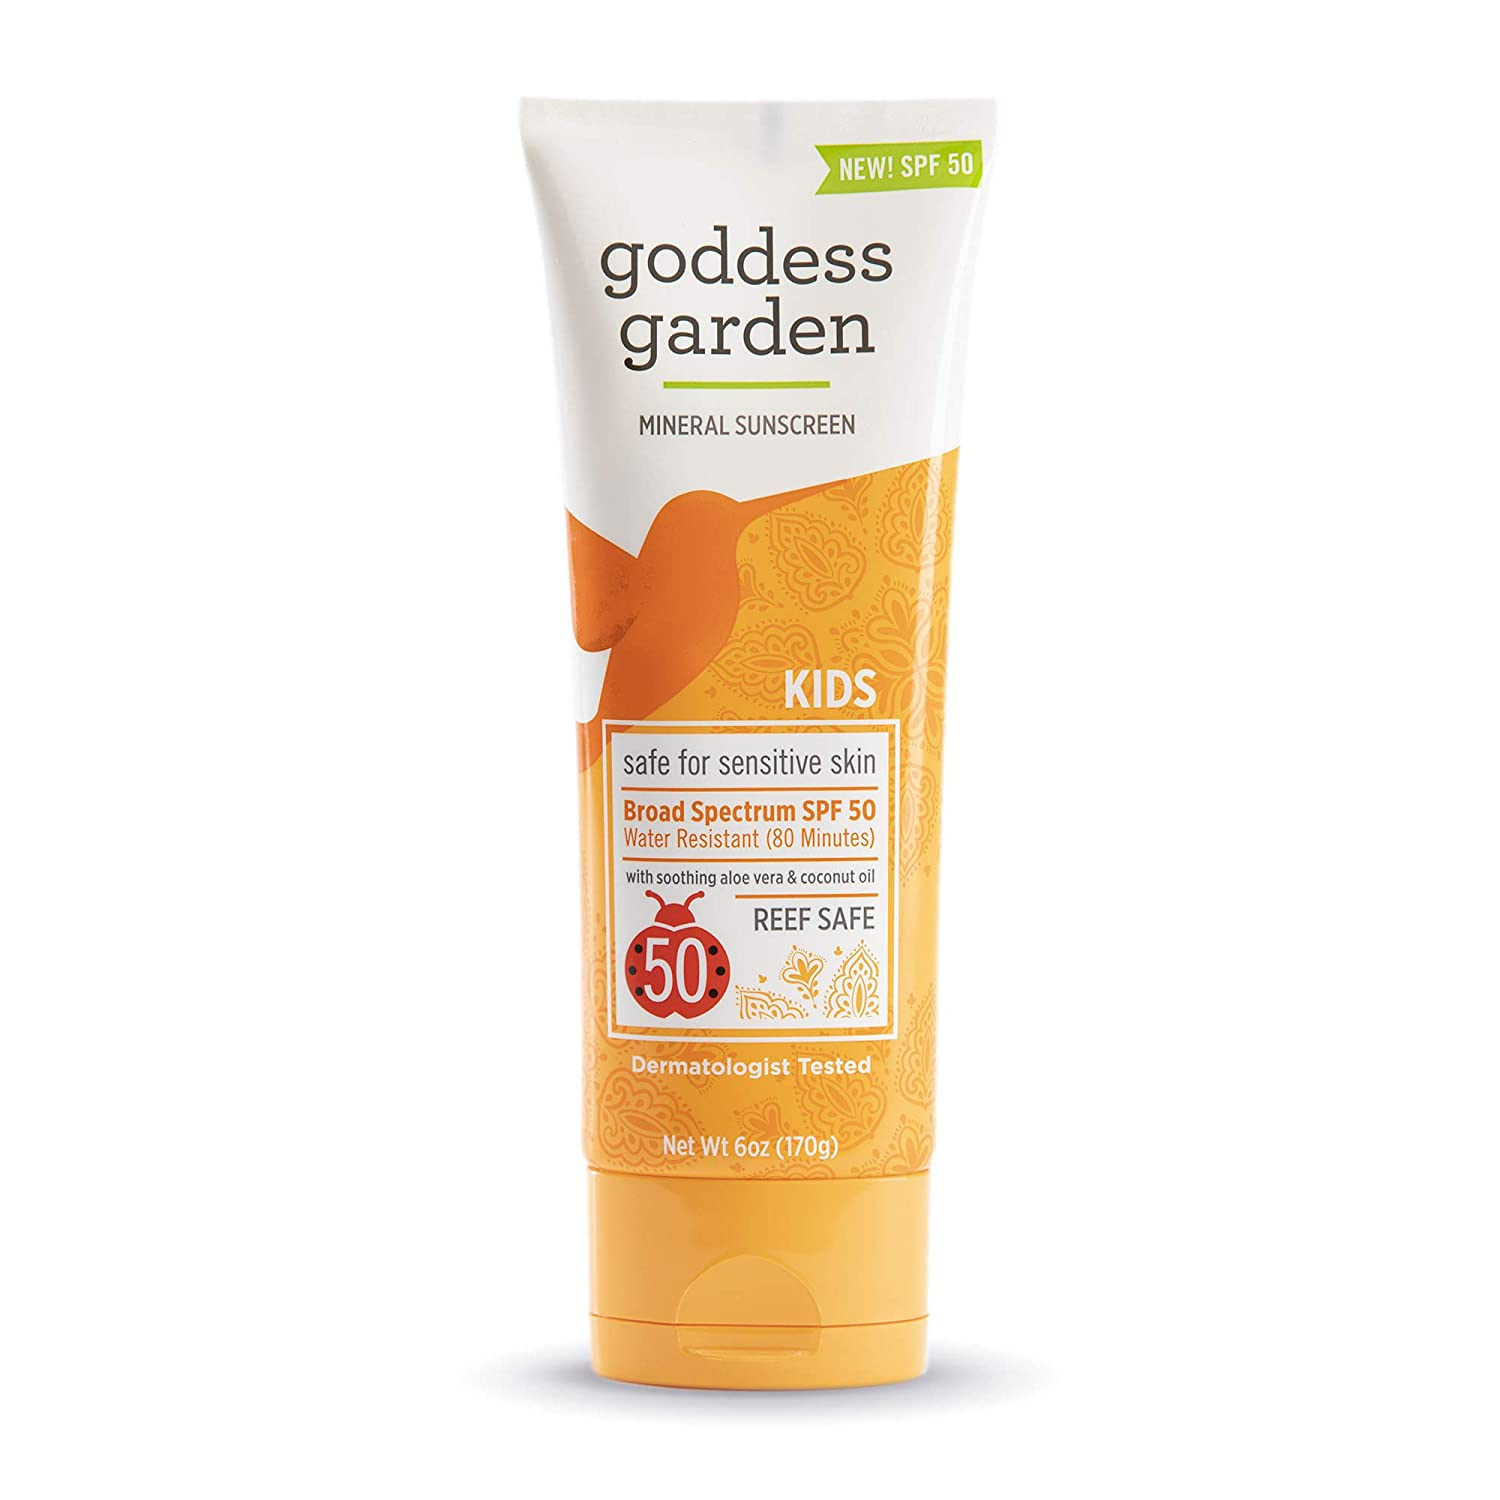 Goddess Garden Kids SPF 50 Mineral Sunscreen Lotion for Sensitive Skin (Tube), Reef Safe, Sheer Zinc Oxide, Broad Spectrum, Water Resistant, Non-Nano, Vegan, Leaping Bunny certified Cruelty-Free, 6oz Best Reef-safe Sunscreen